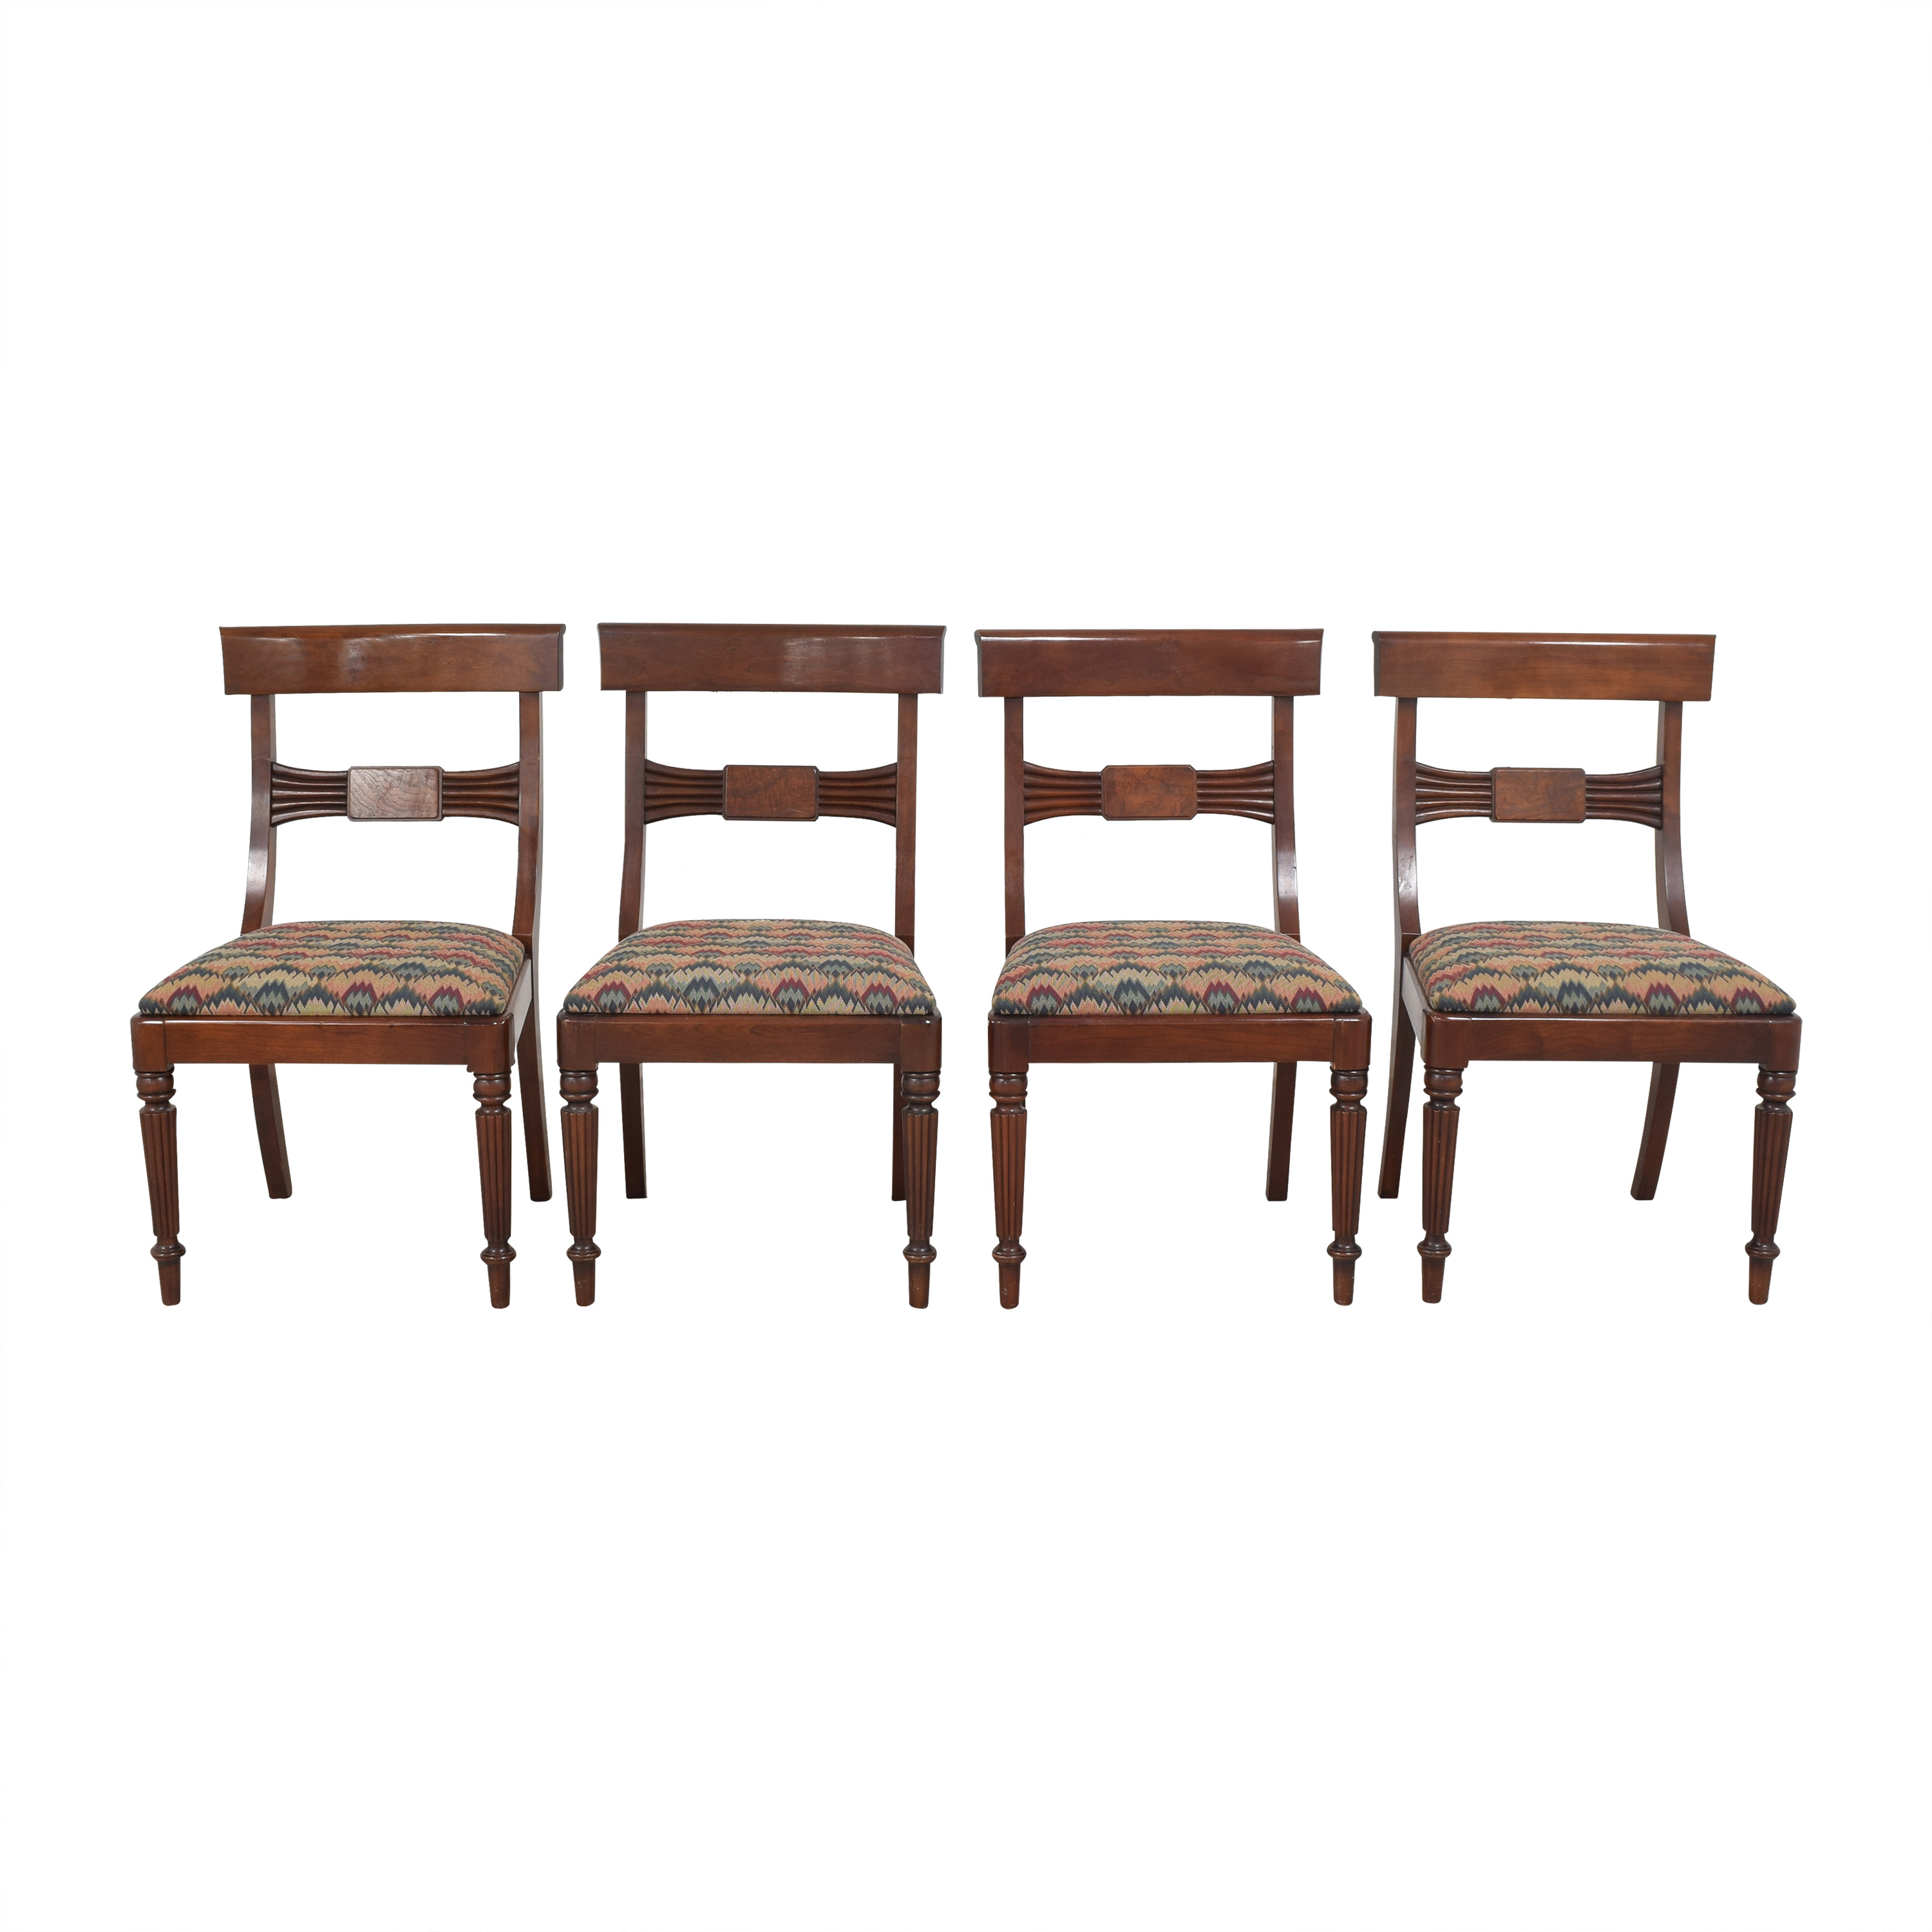 Statton Statton Dining Side Chairs nj